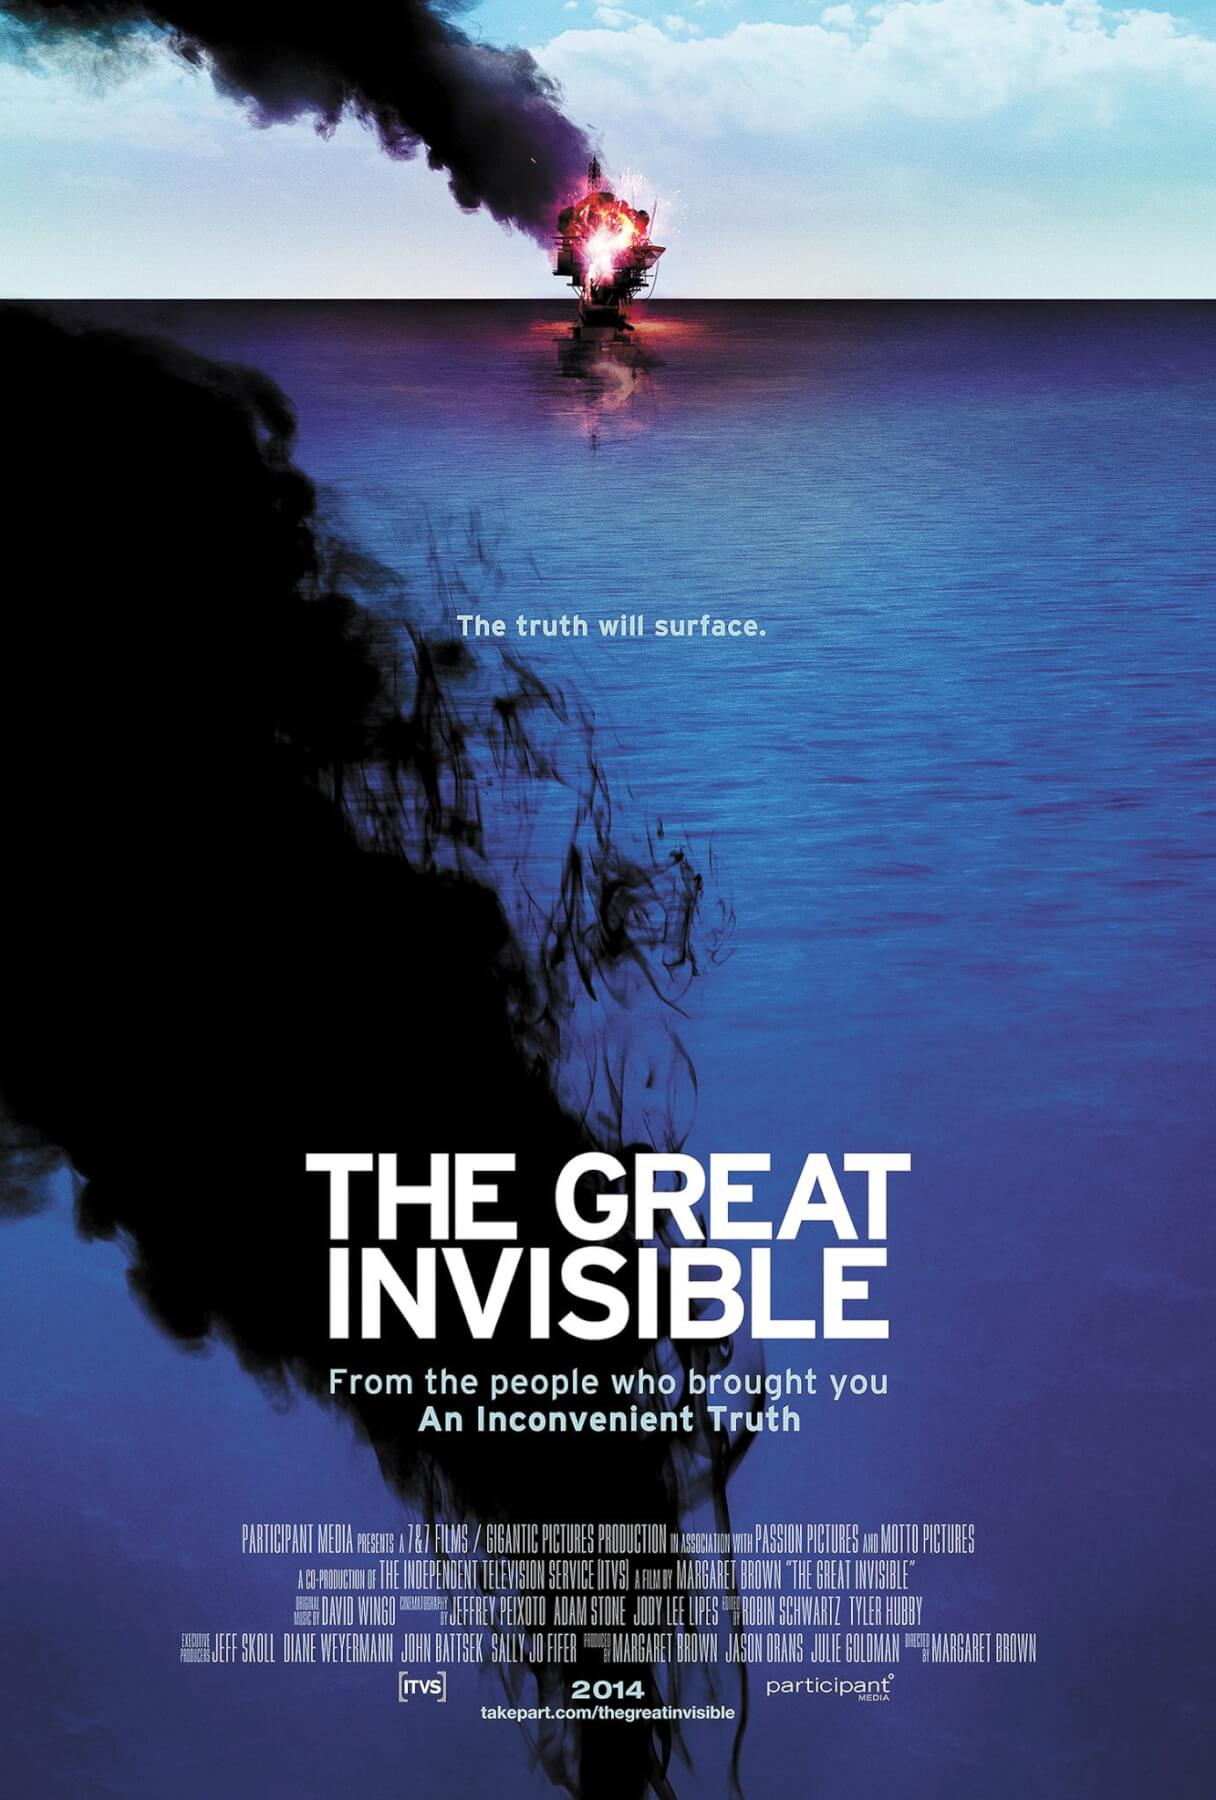 Margaret Brown's 'The Great Invisible' debuts in Mobile Nov. 20